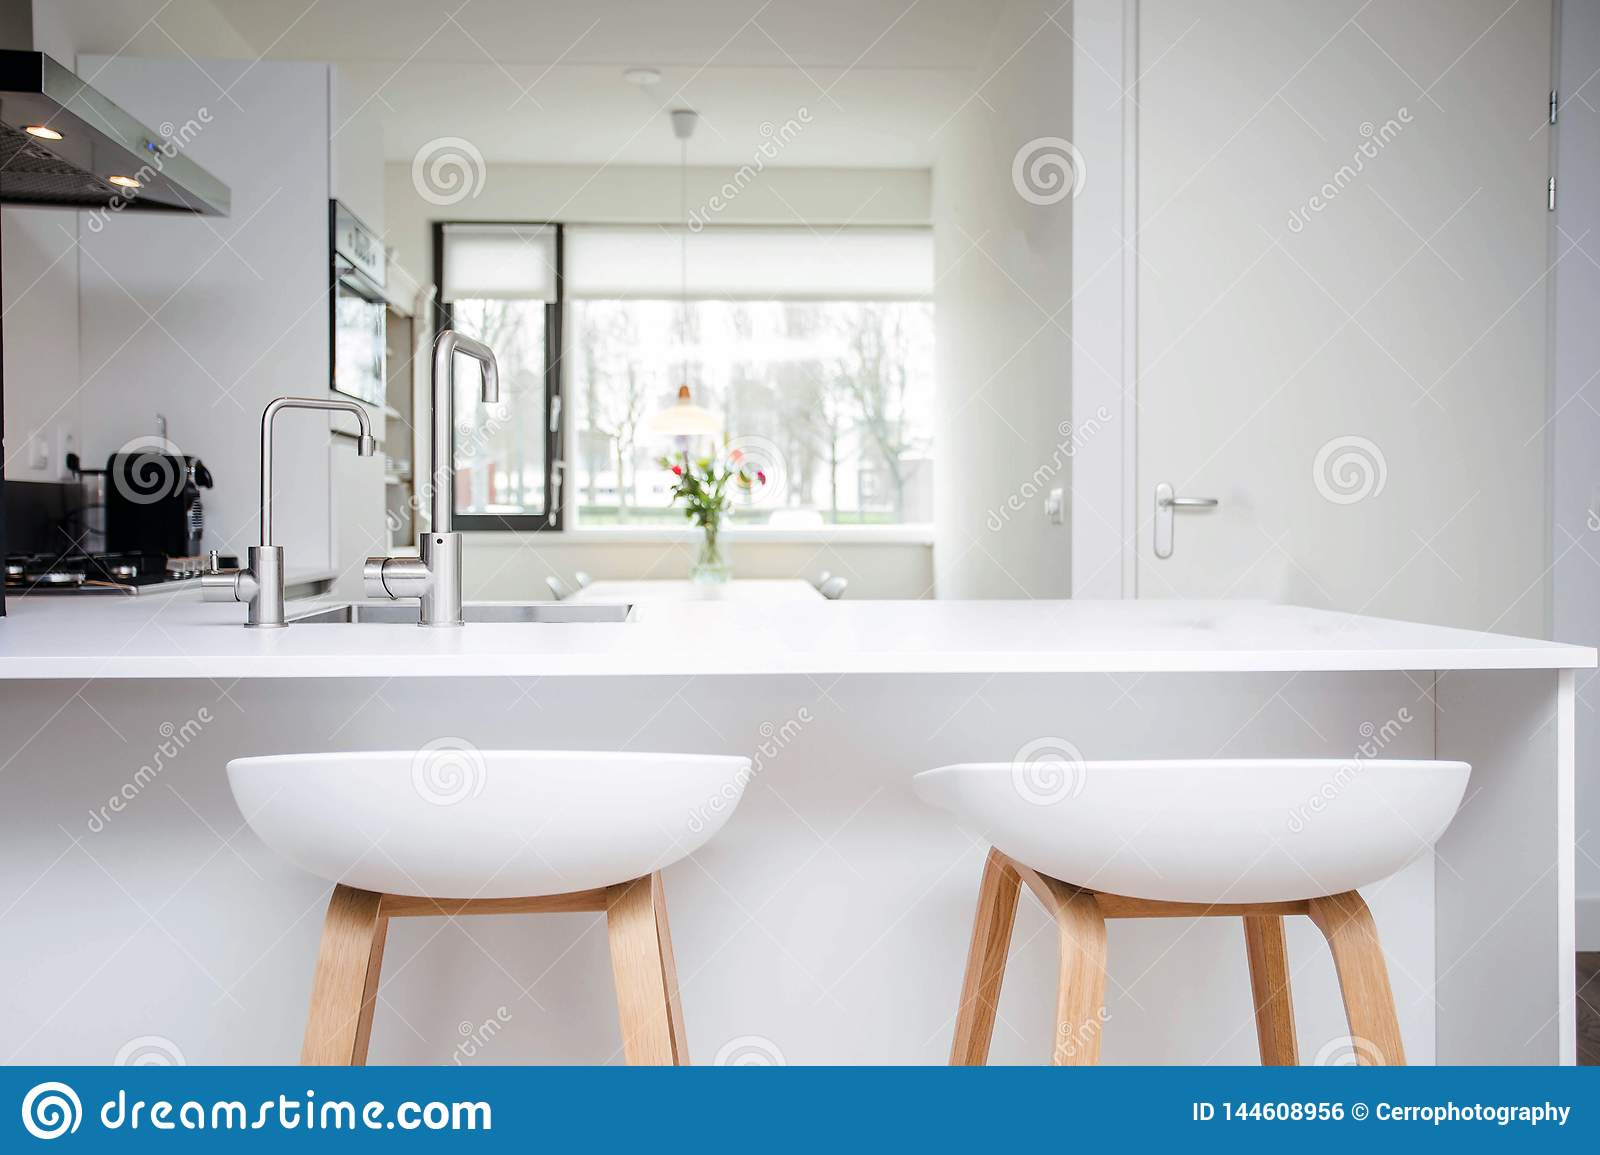 Image of: Bar Stools By Modern White Kitchen Island New And Clean Modern Design Stock Photo Image Of Kitchen Clean 144608956